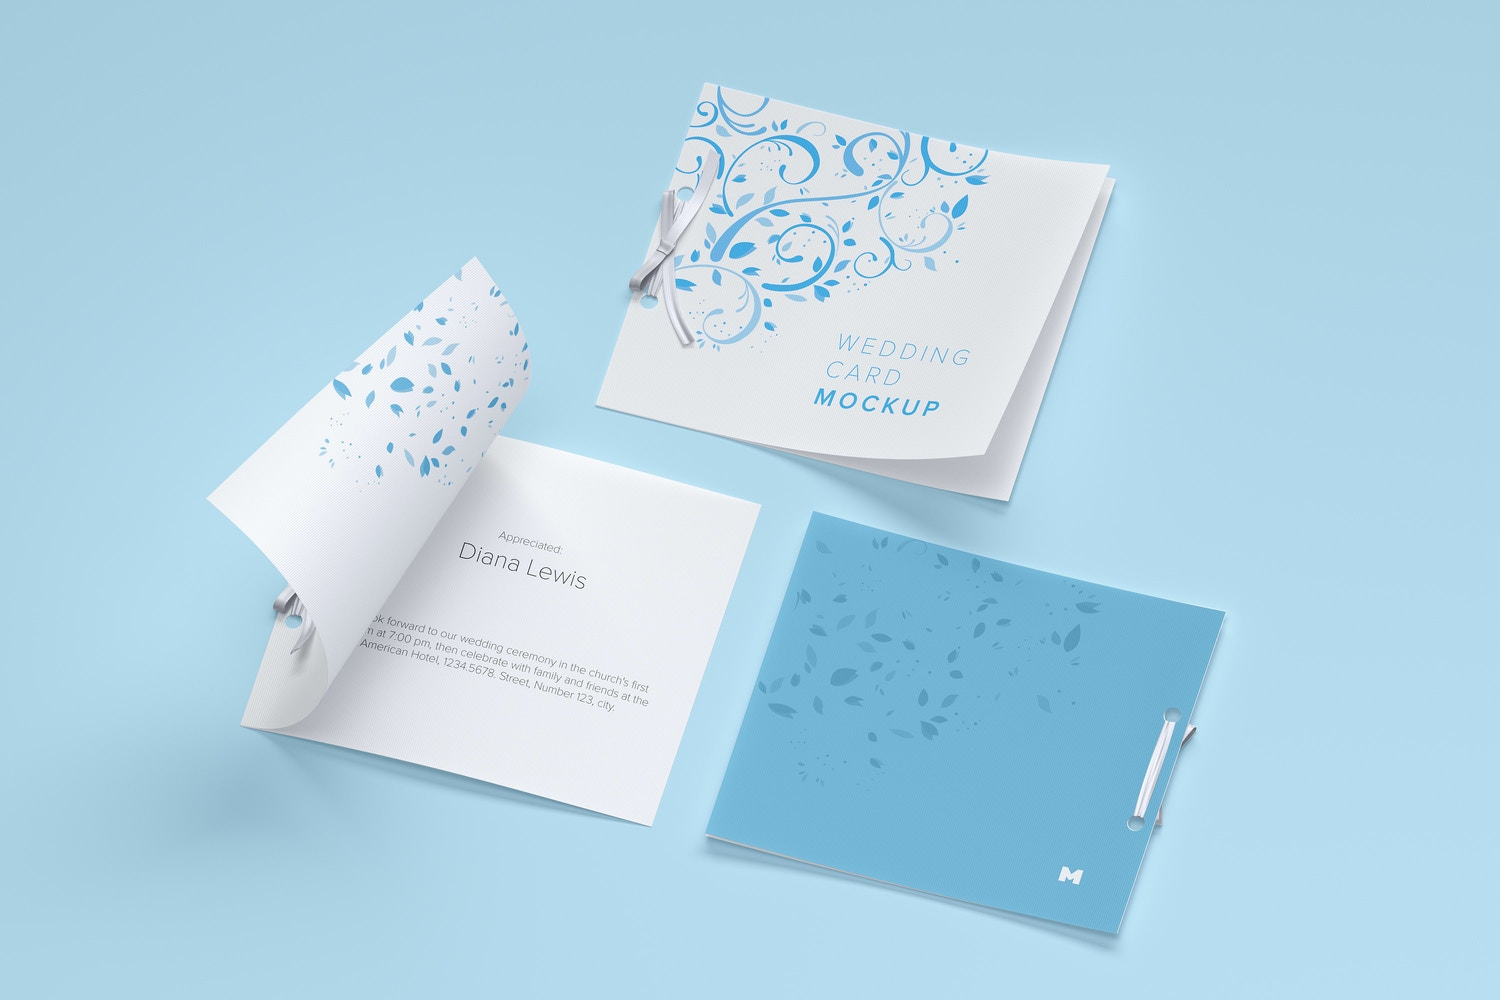 Wedding Card Mockup, Covers and Inner Pages (5) by Original Mockups on Original Mockups